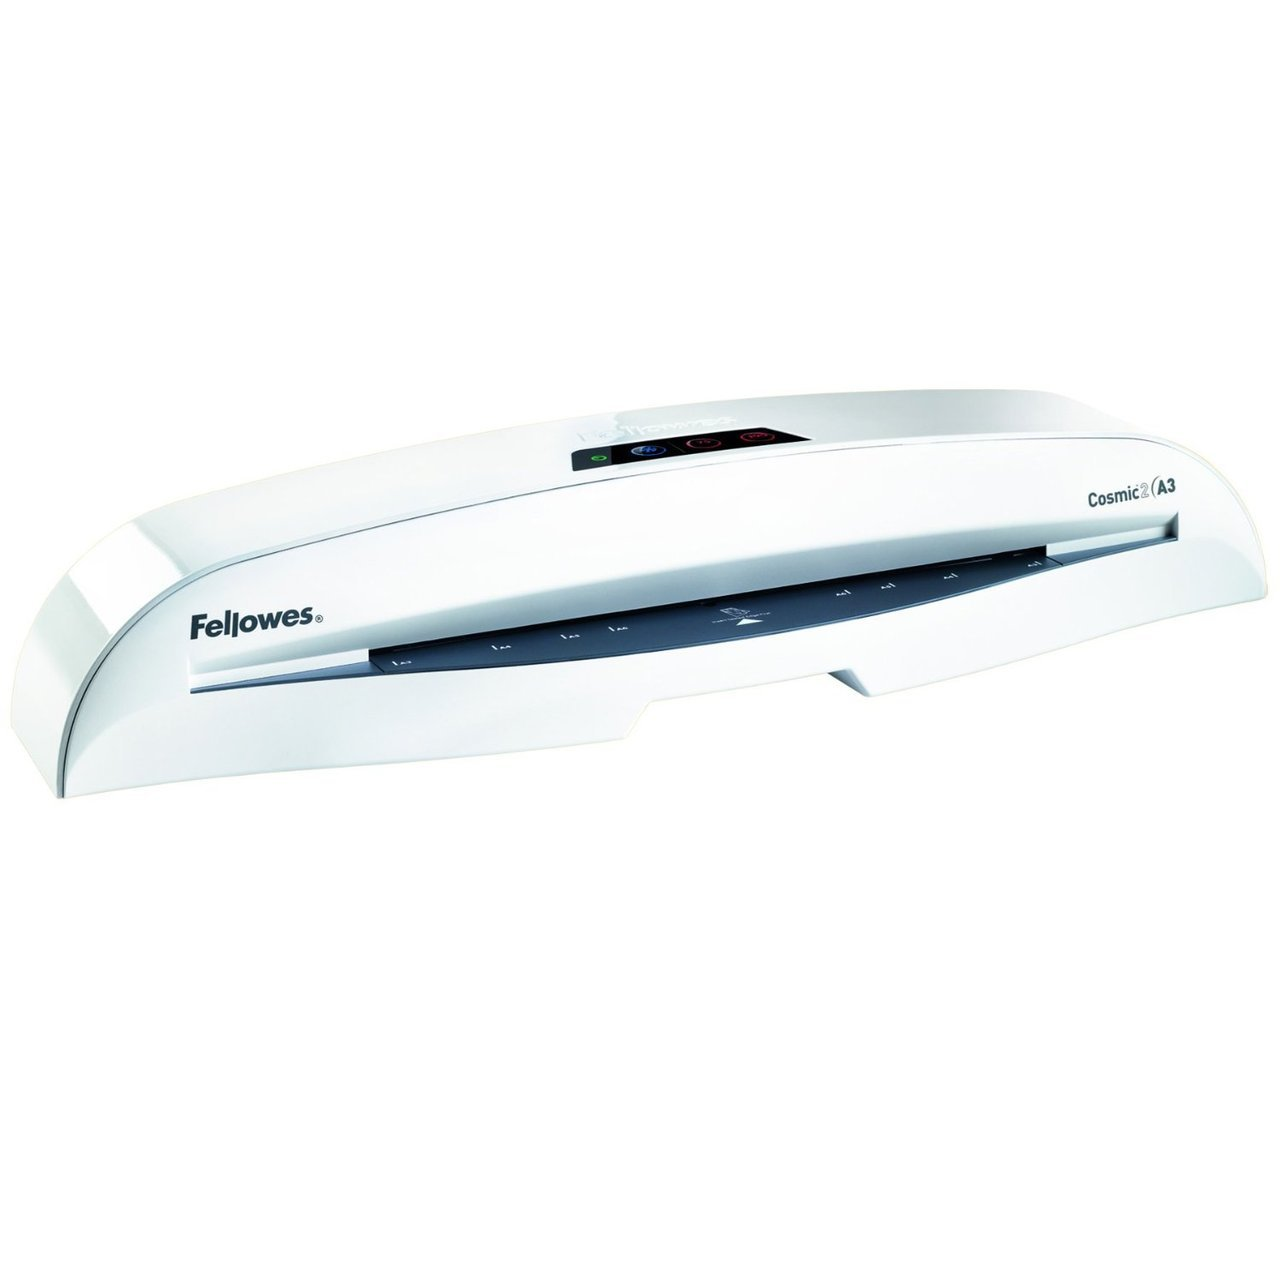 Fellowes Cosmic 2 5725701 Laminator A3